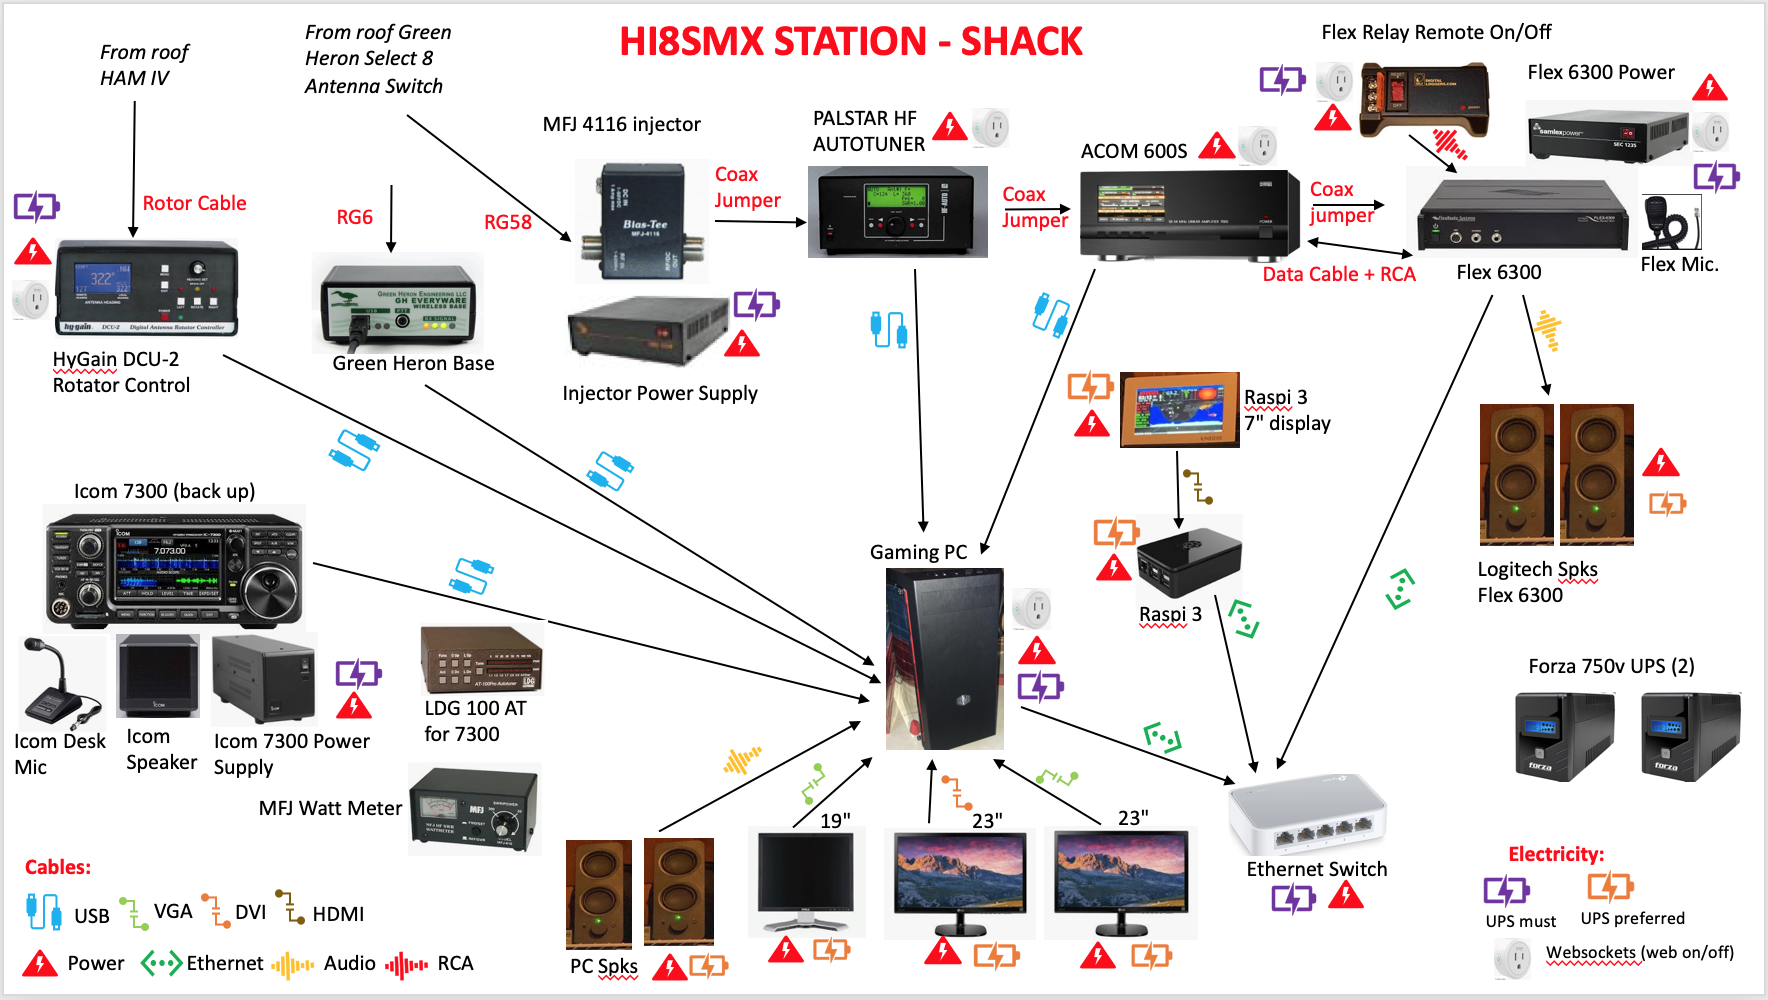 HI8SMX Shack Diagram 032020.png